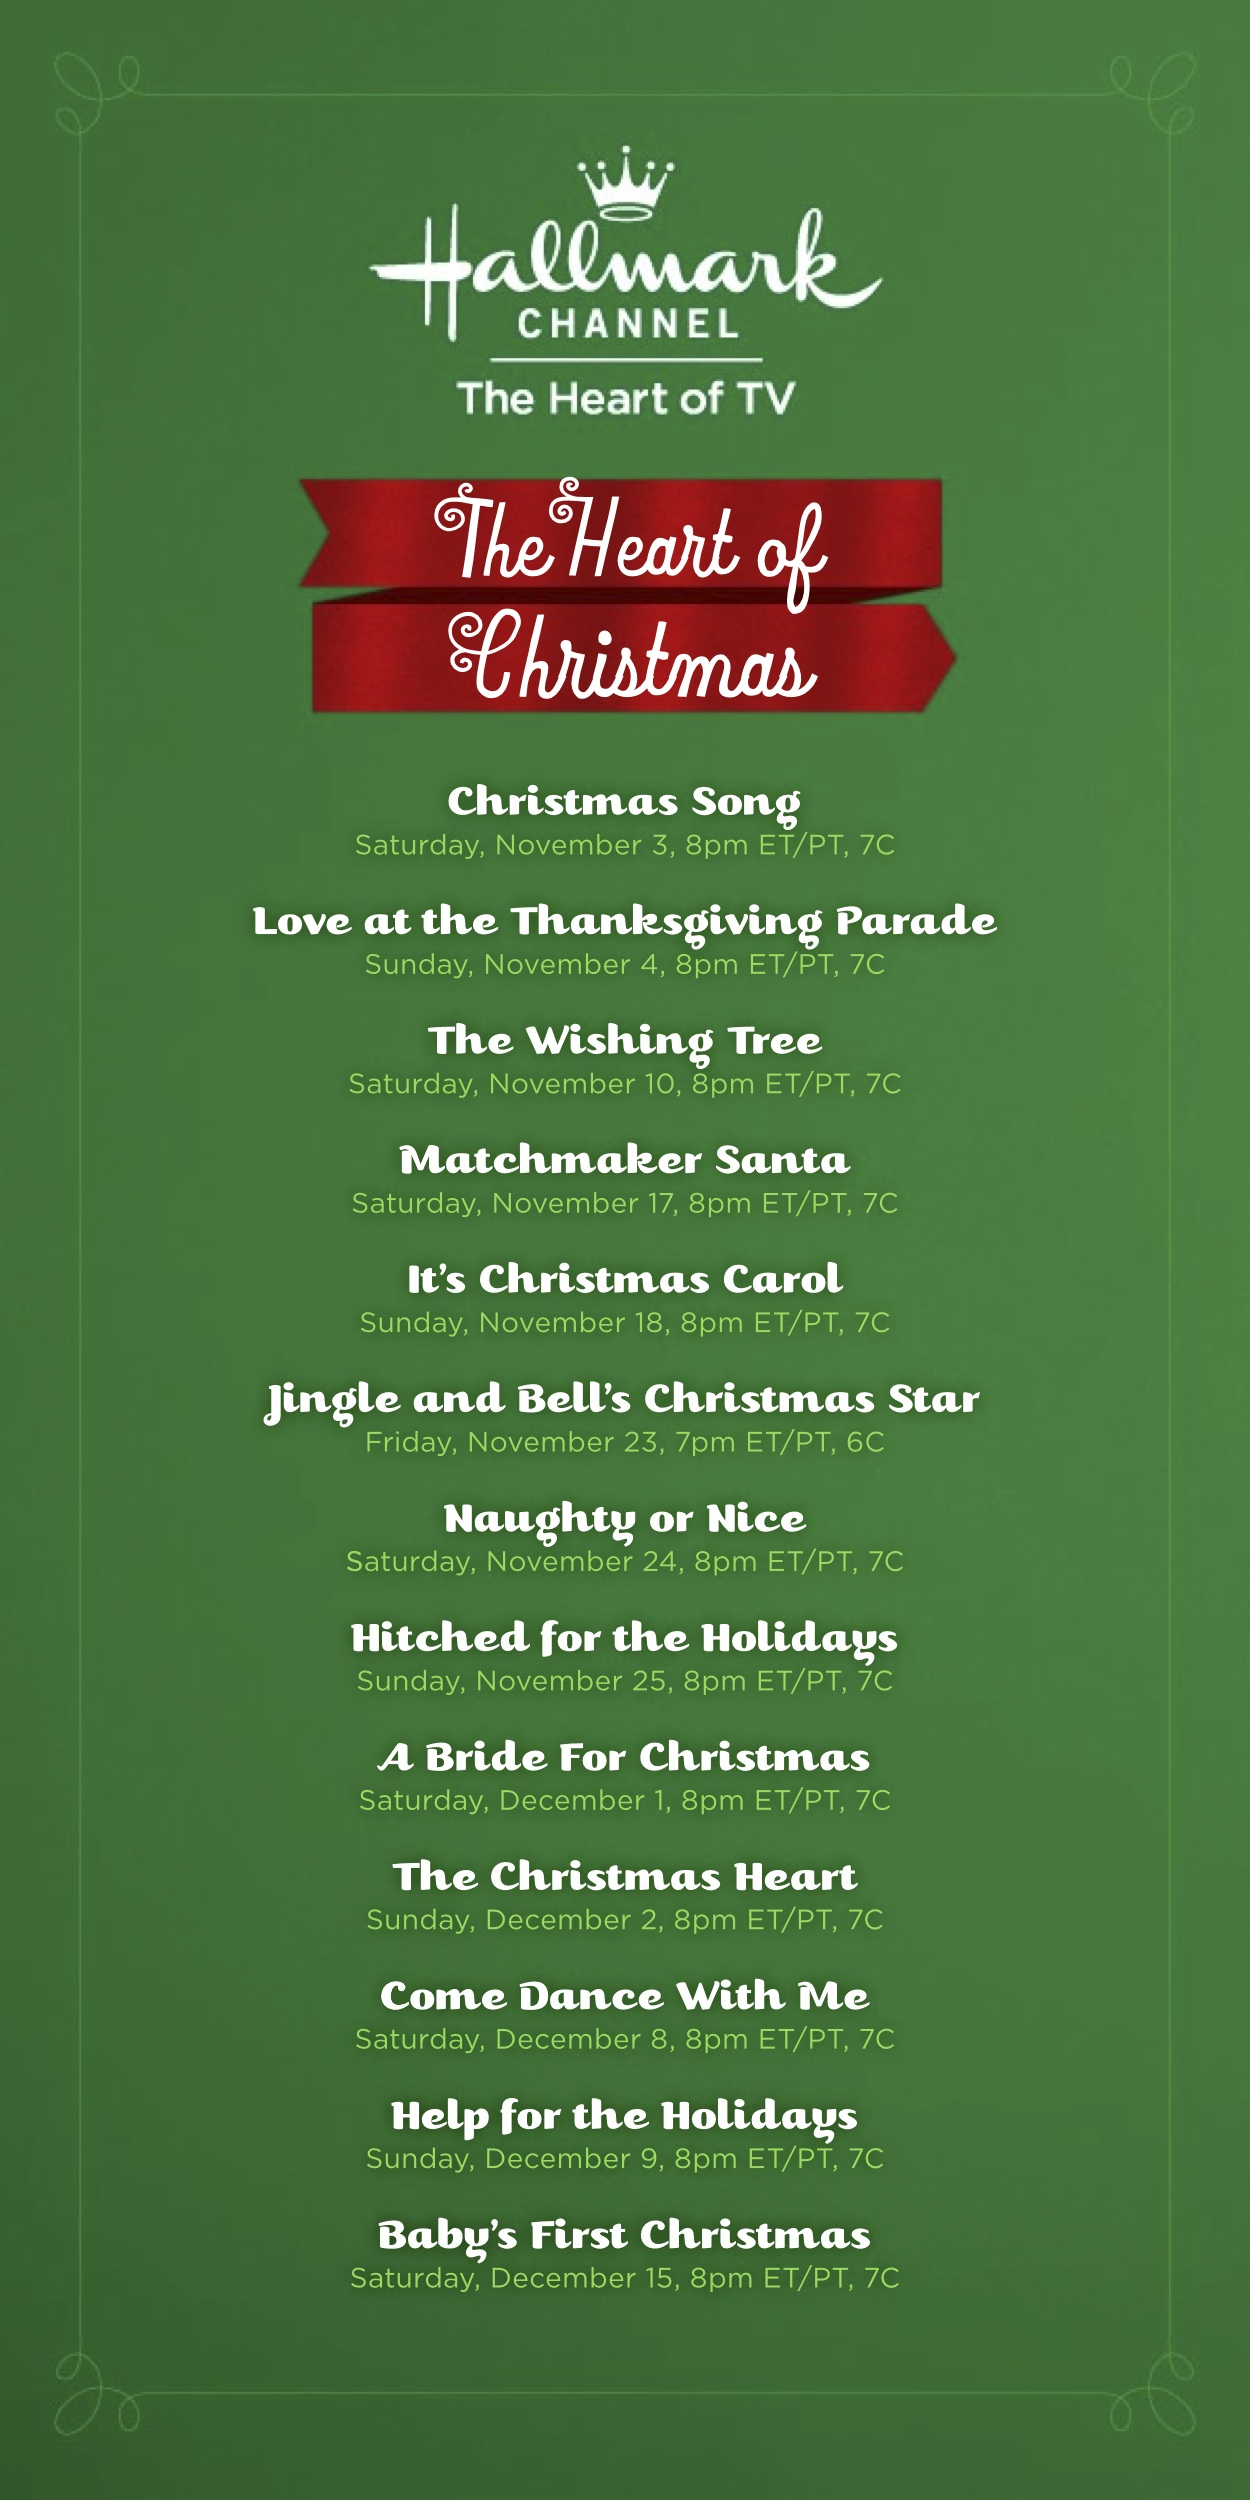 Holiday Movie Lineup on The Hallmark Channel